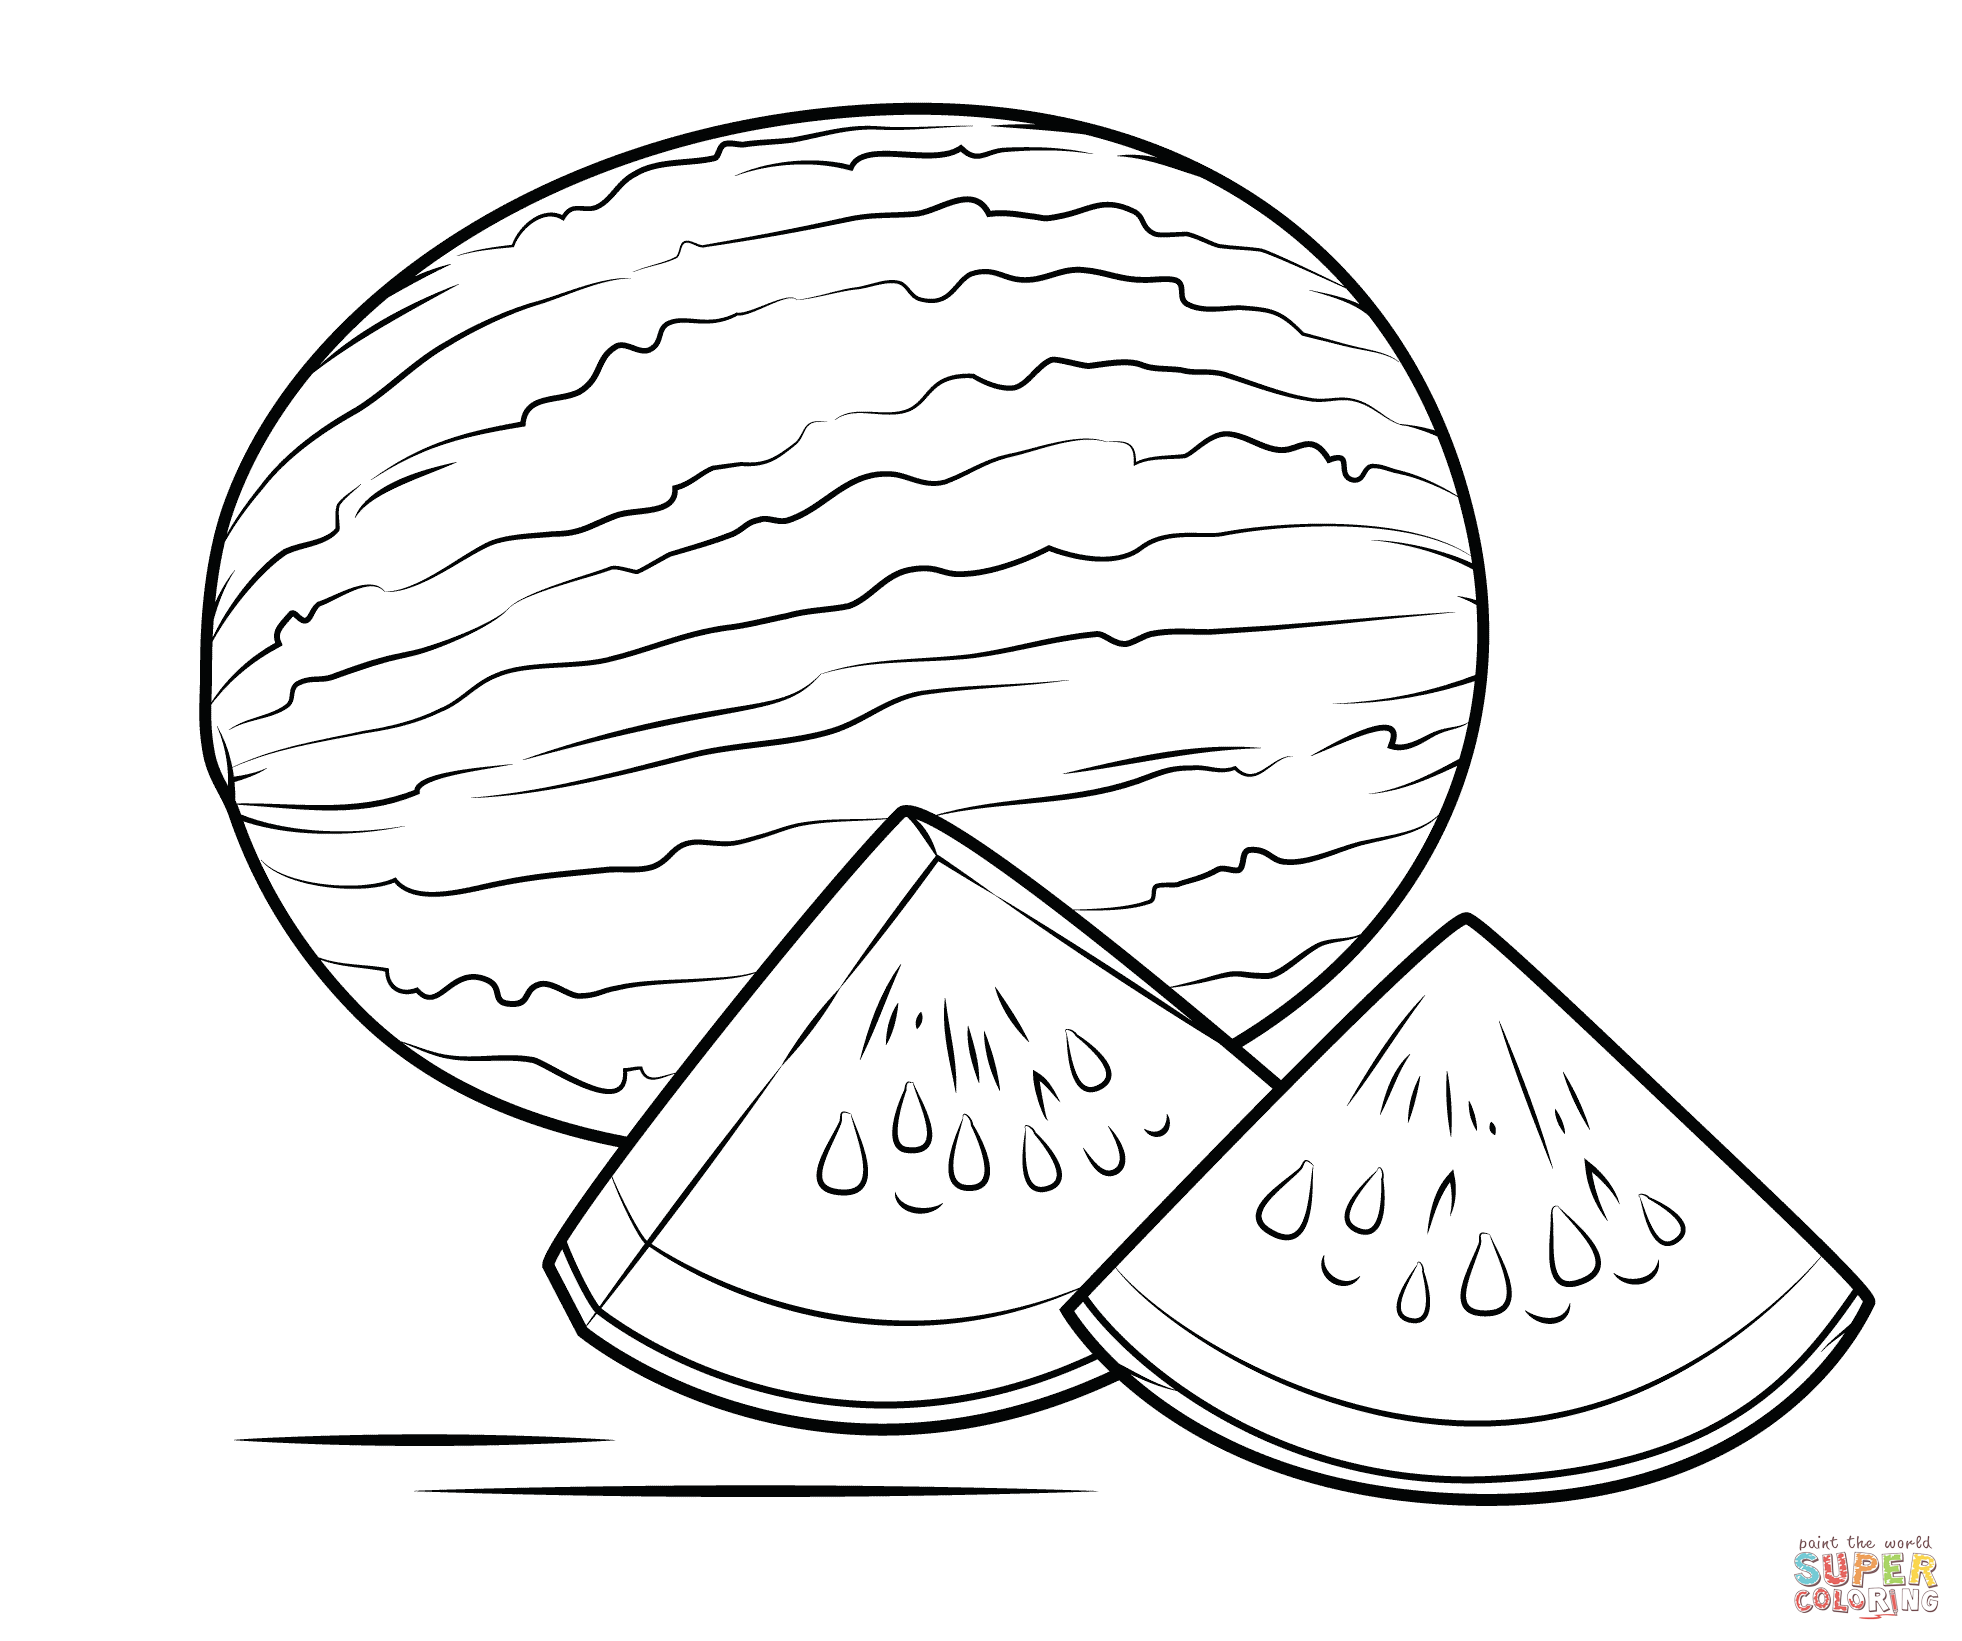 watermelon coloring image best watermelon coloring page designs coloring pages image coloring watermelon